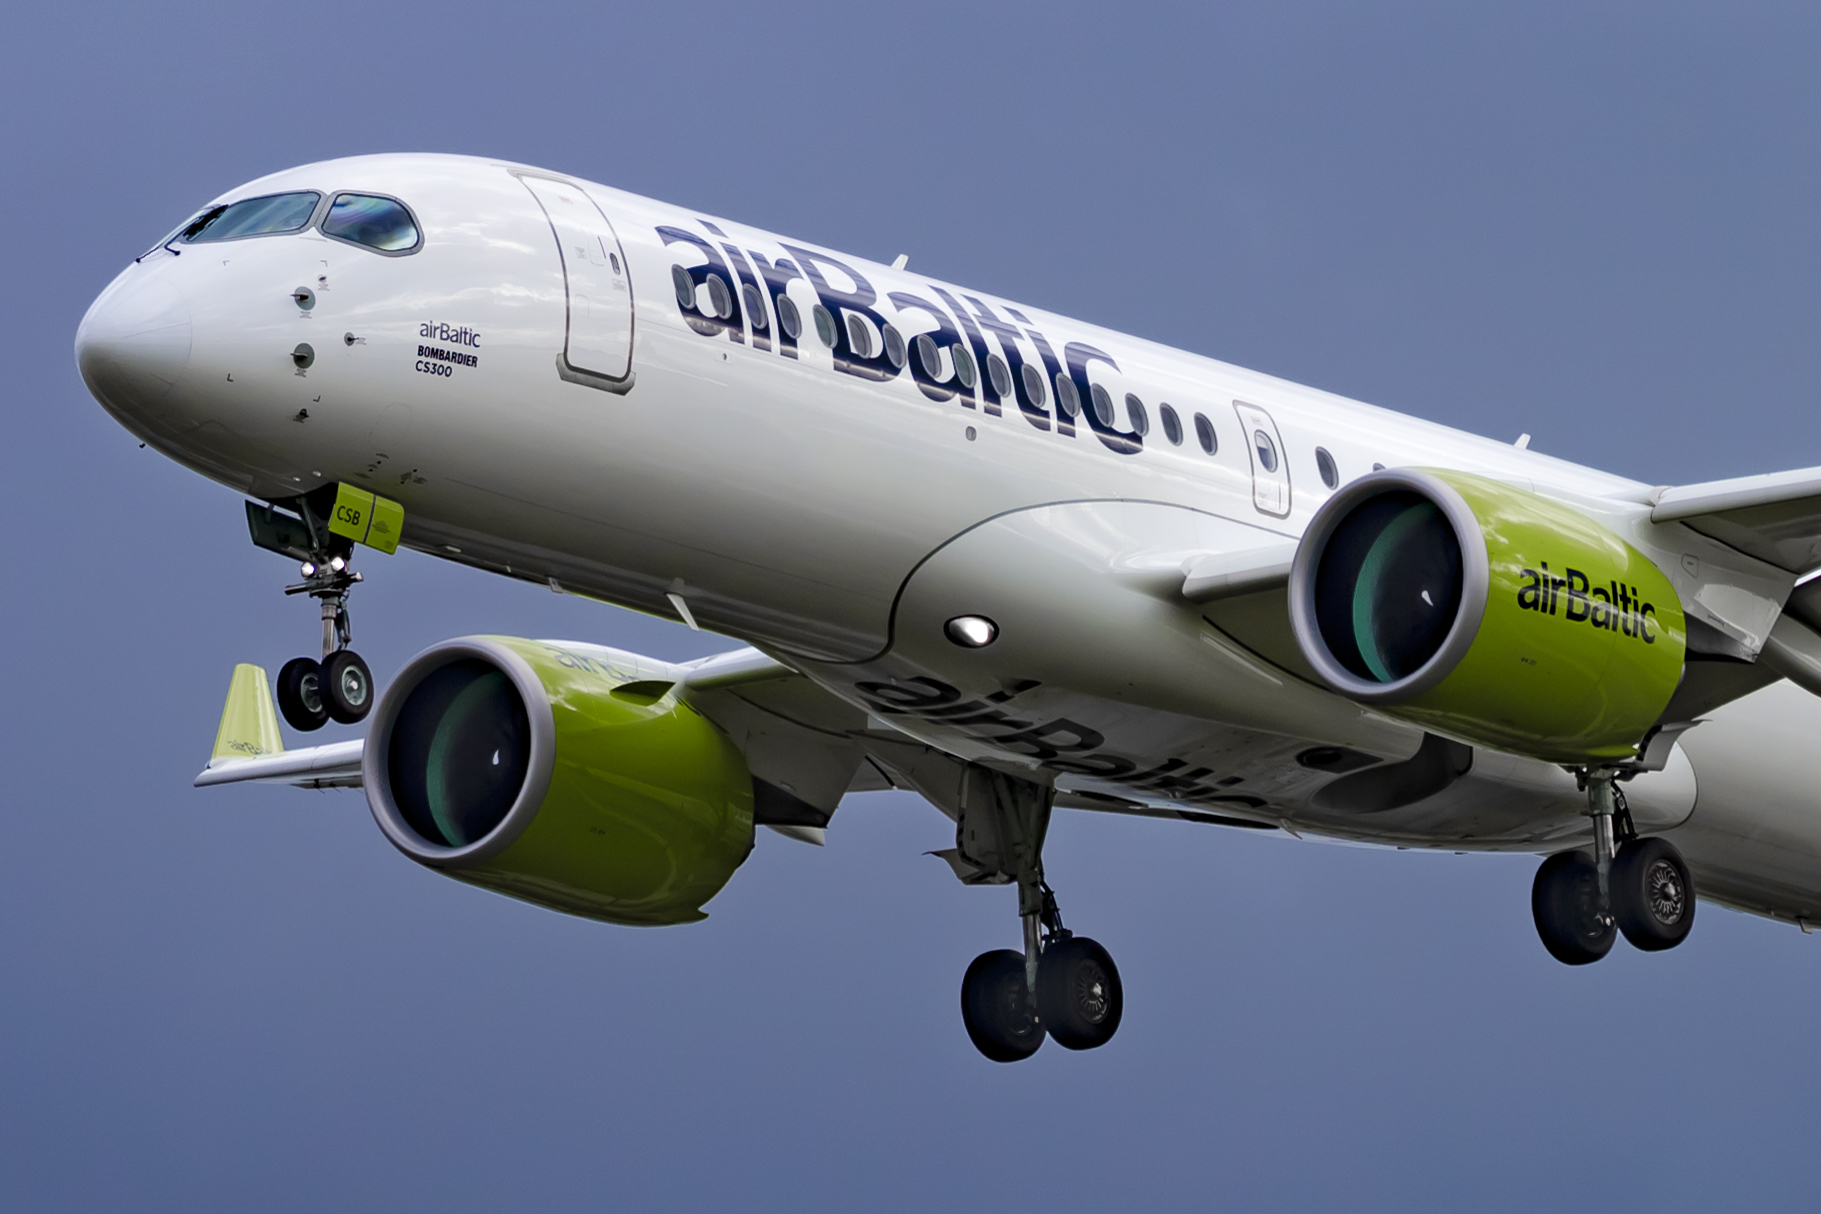 En Airbus A220-300 fra airBaltic. Foto: © Thorbjørn Brunander Sund, Danish Aviation Photo